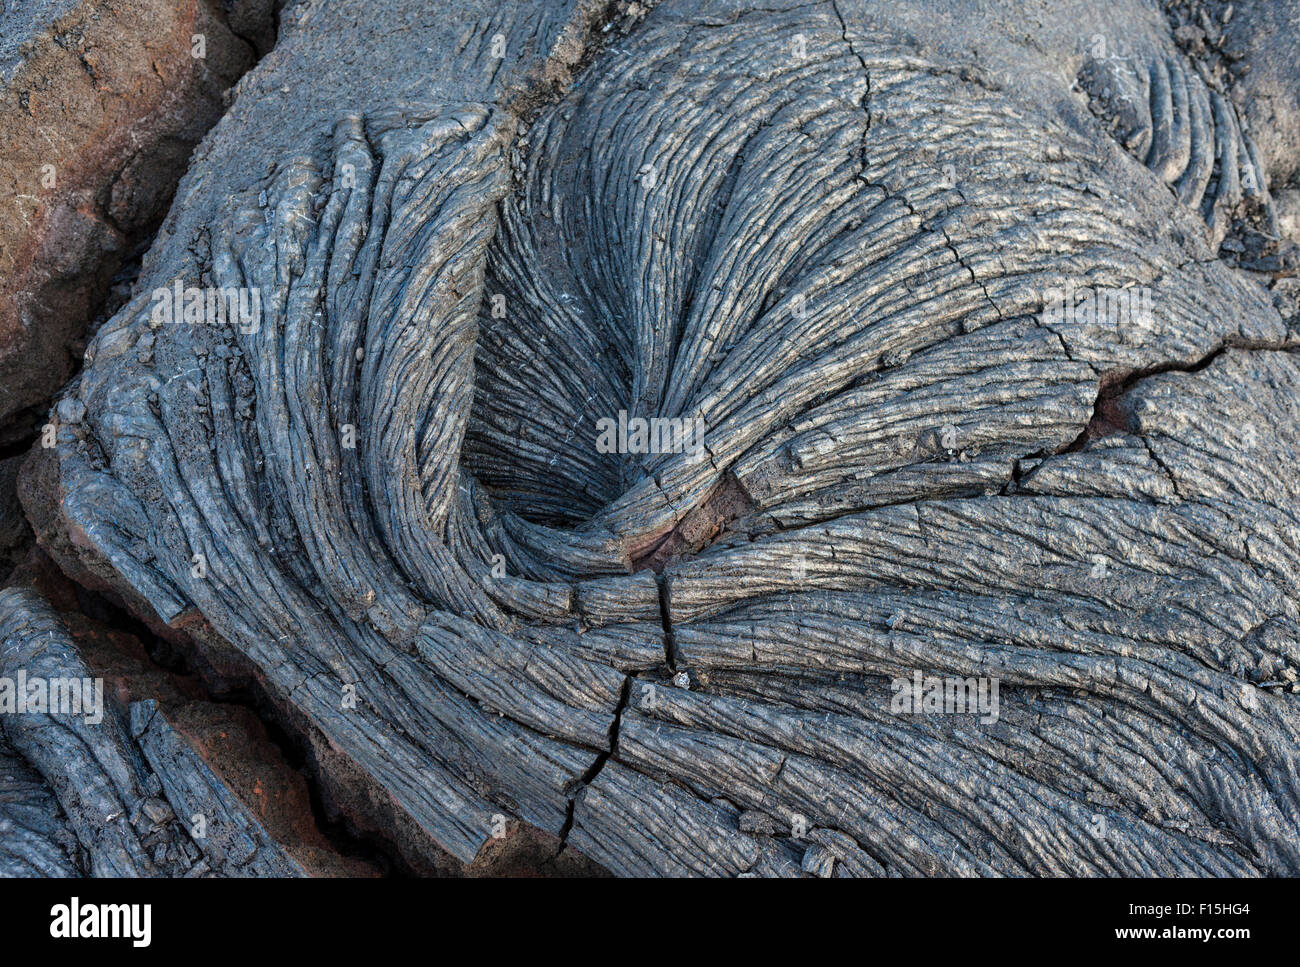 Rope lava {pahoehoe] swirl in Hawaii Volcanoes National Park on the Big Island - Stock Image